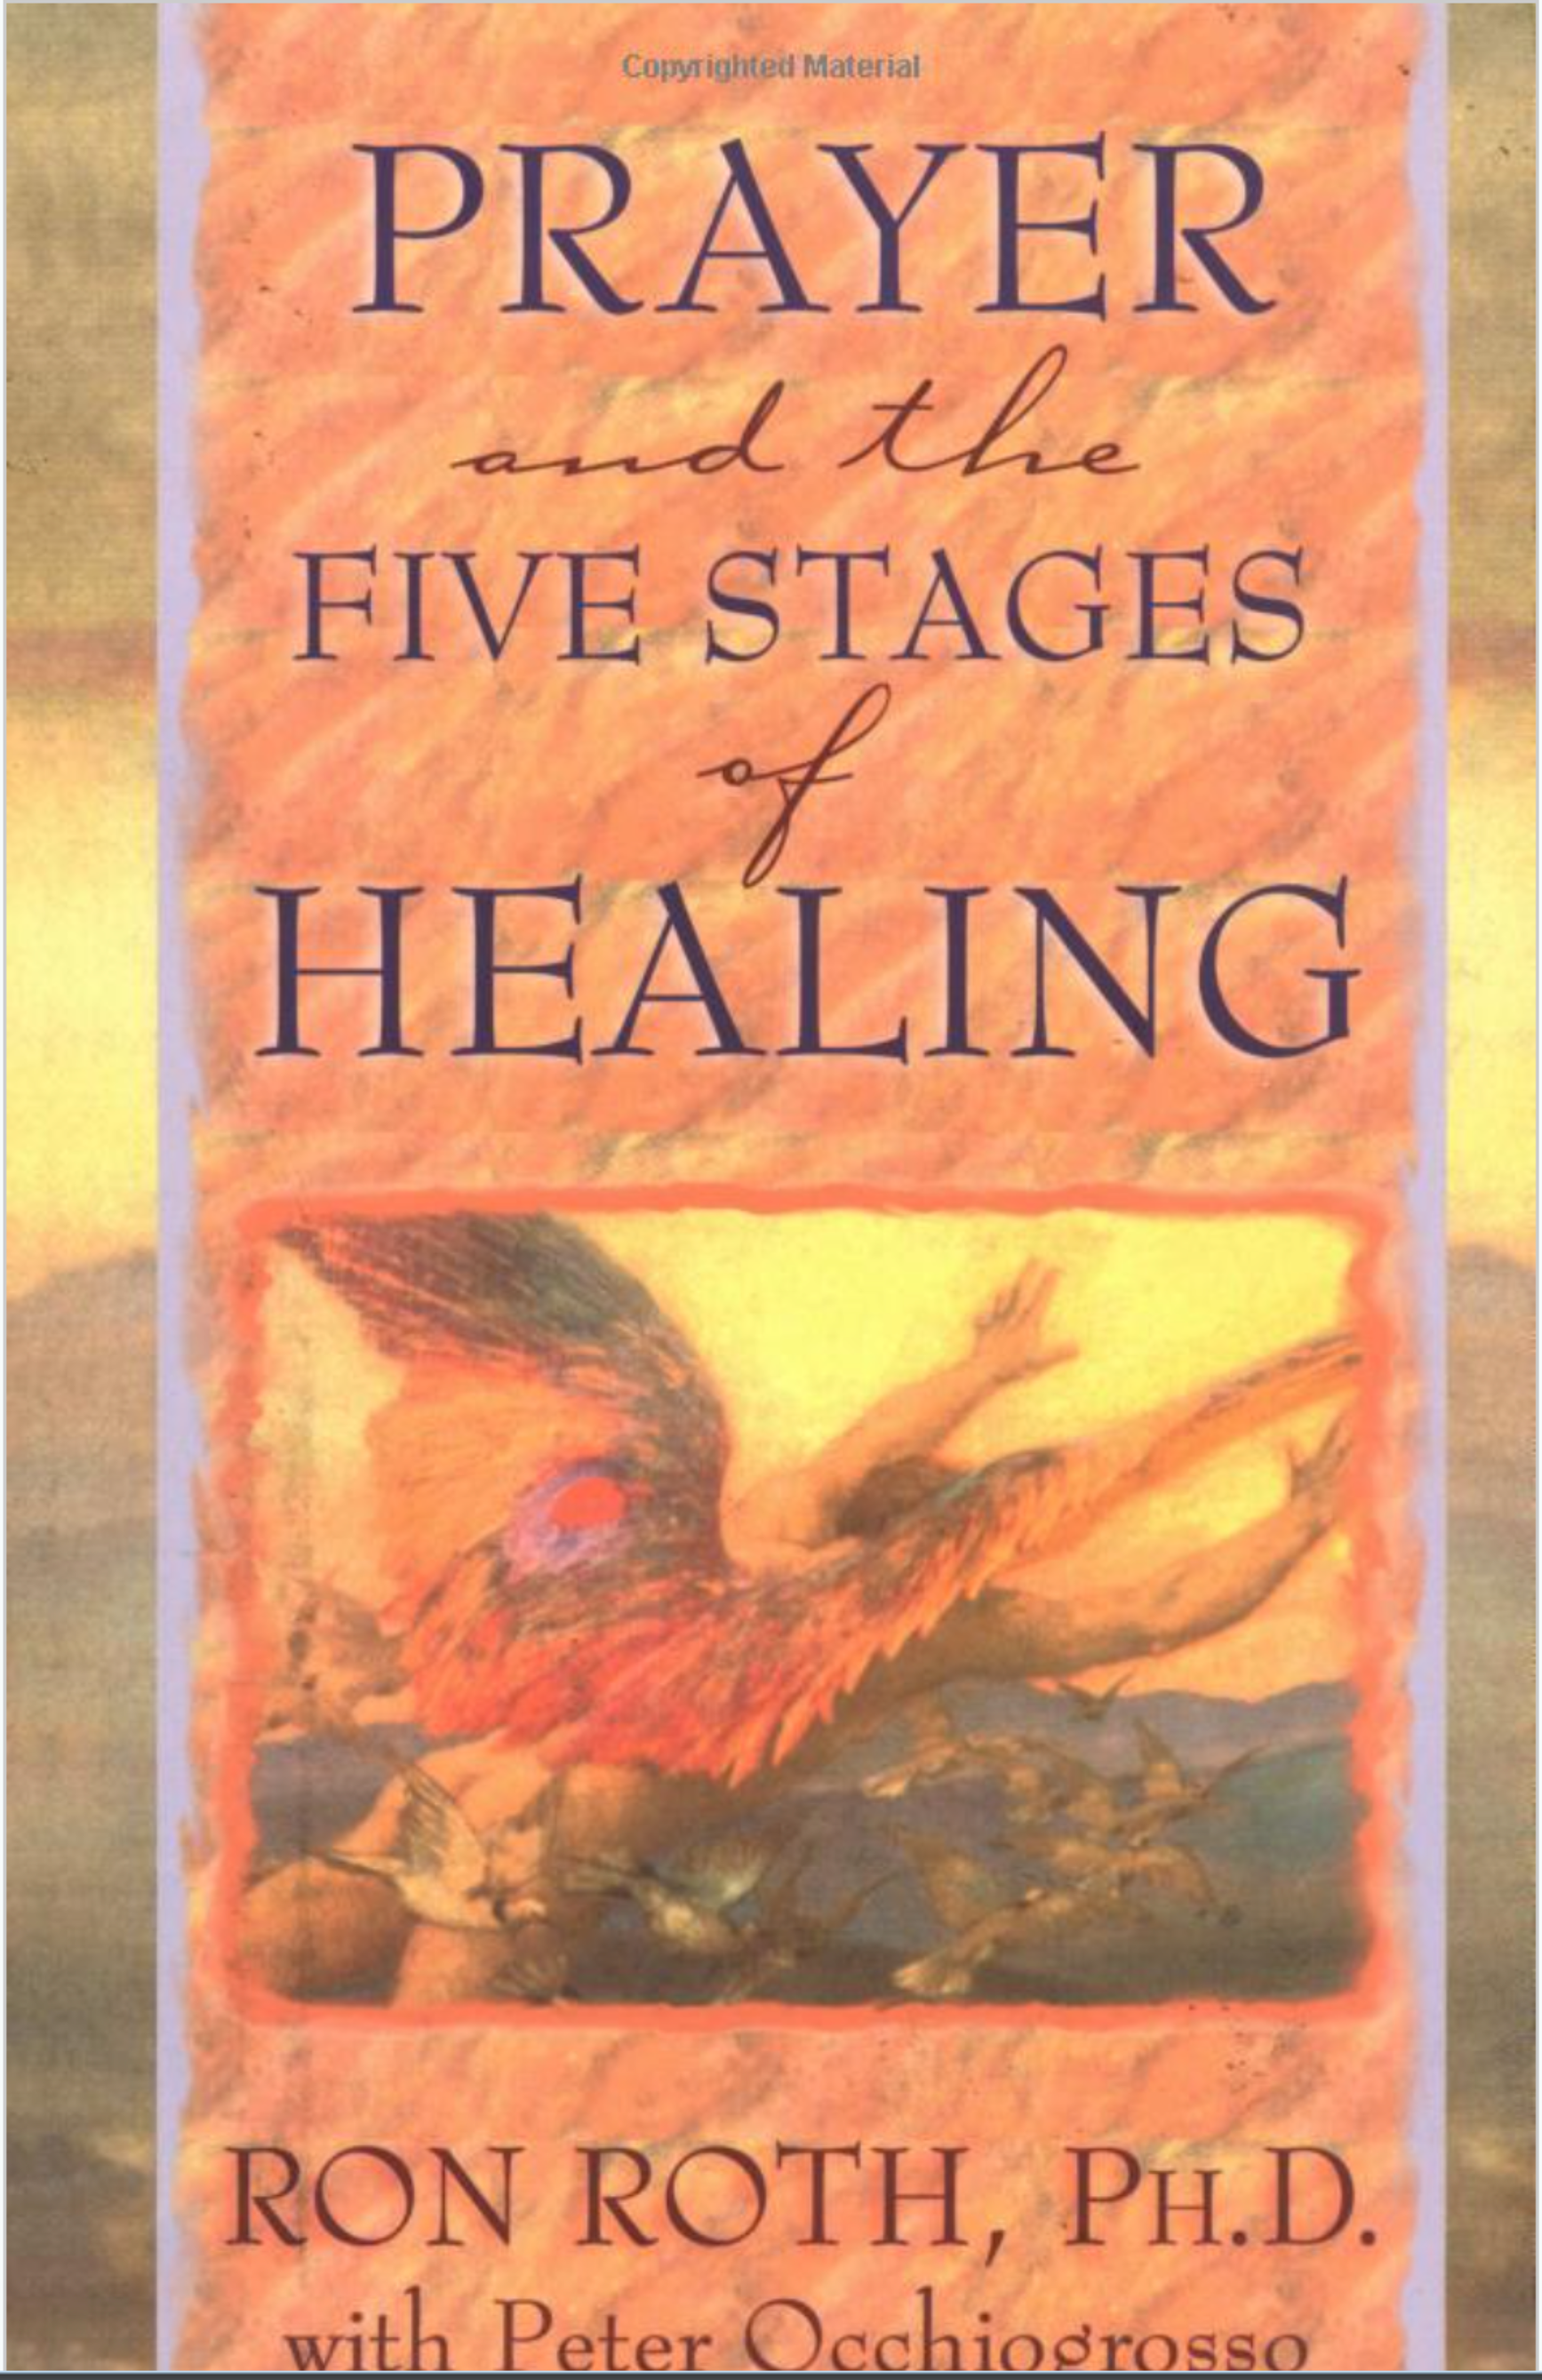 Prayer and the Five Stages of Healing by Ron Roth PhD